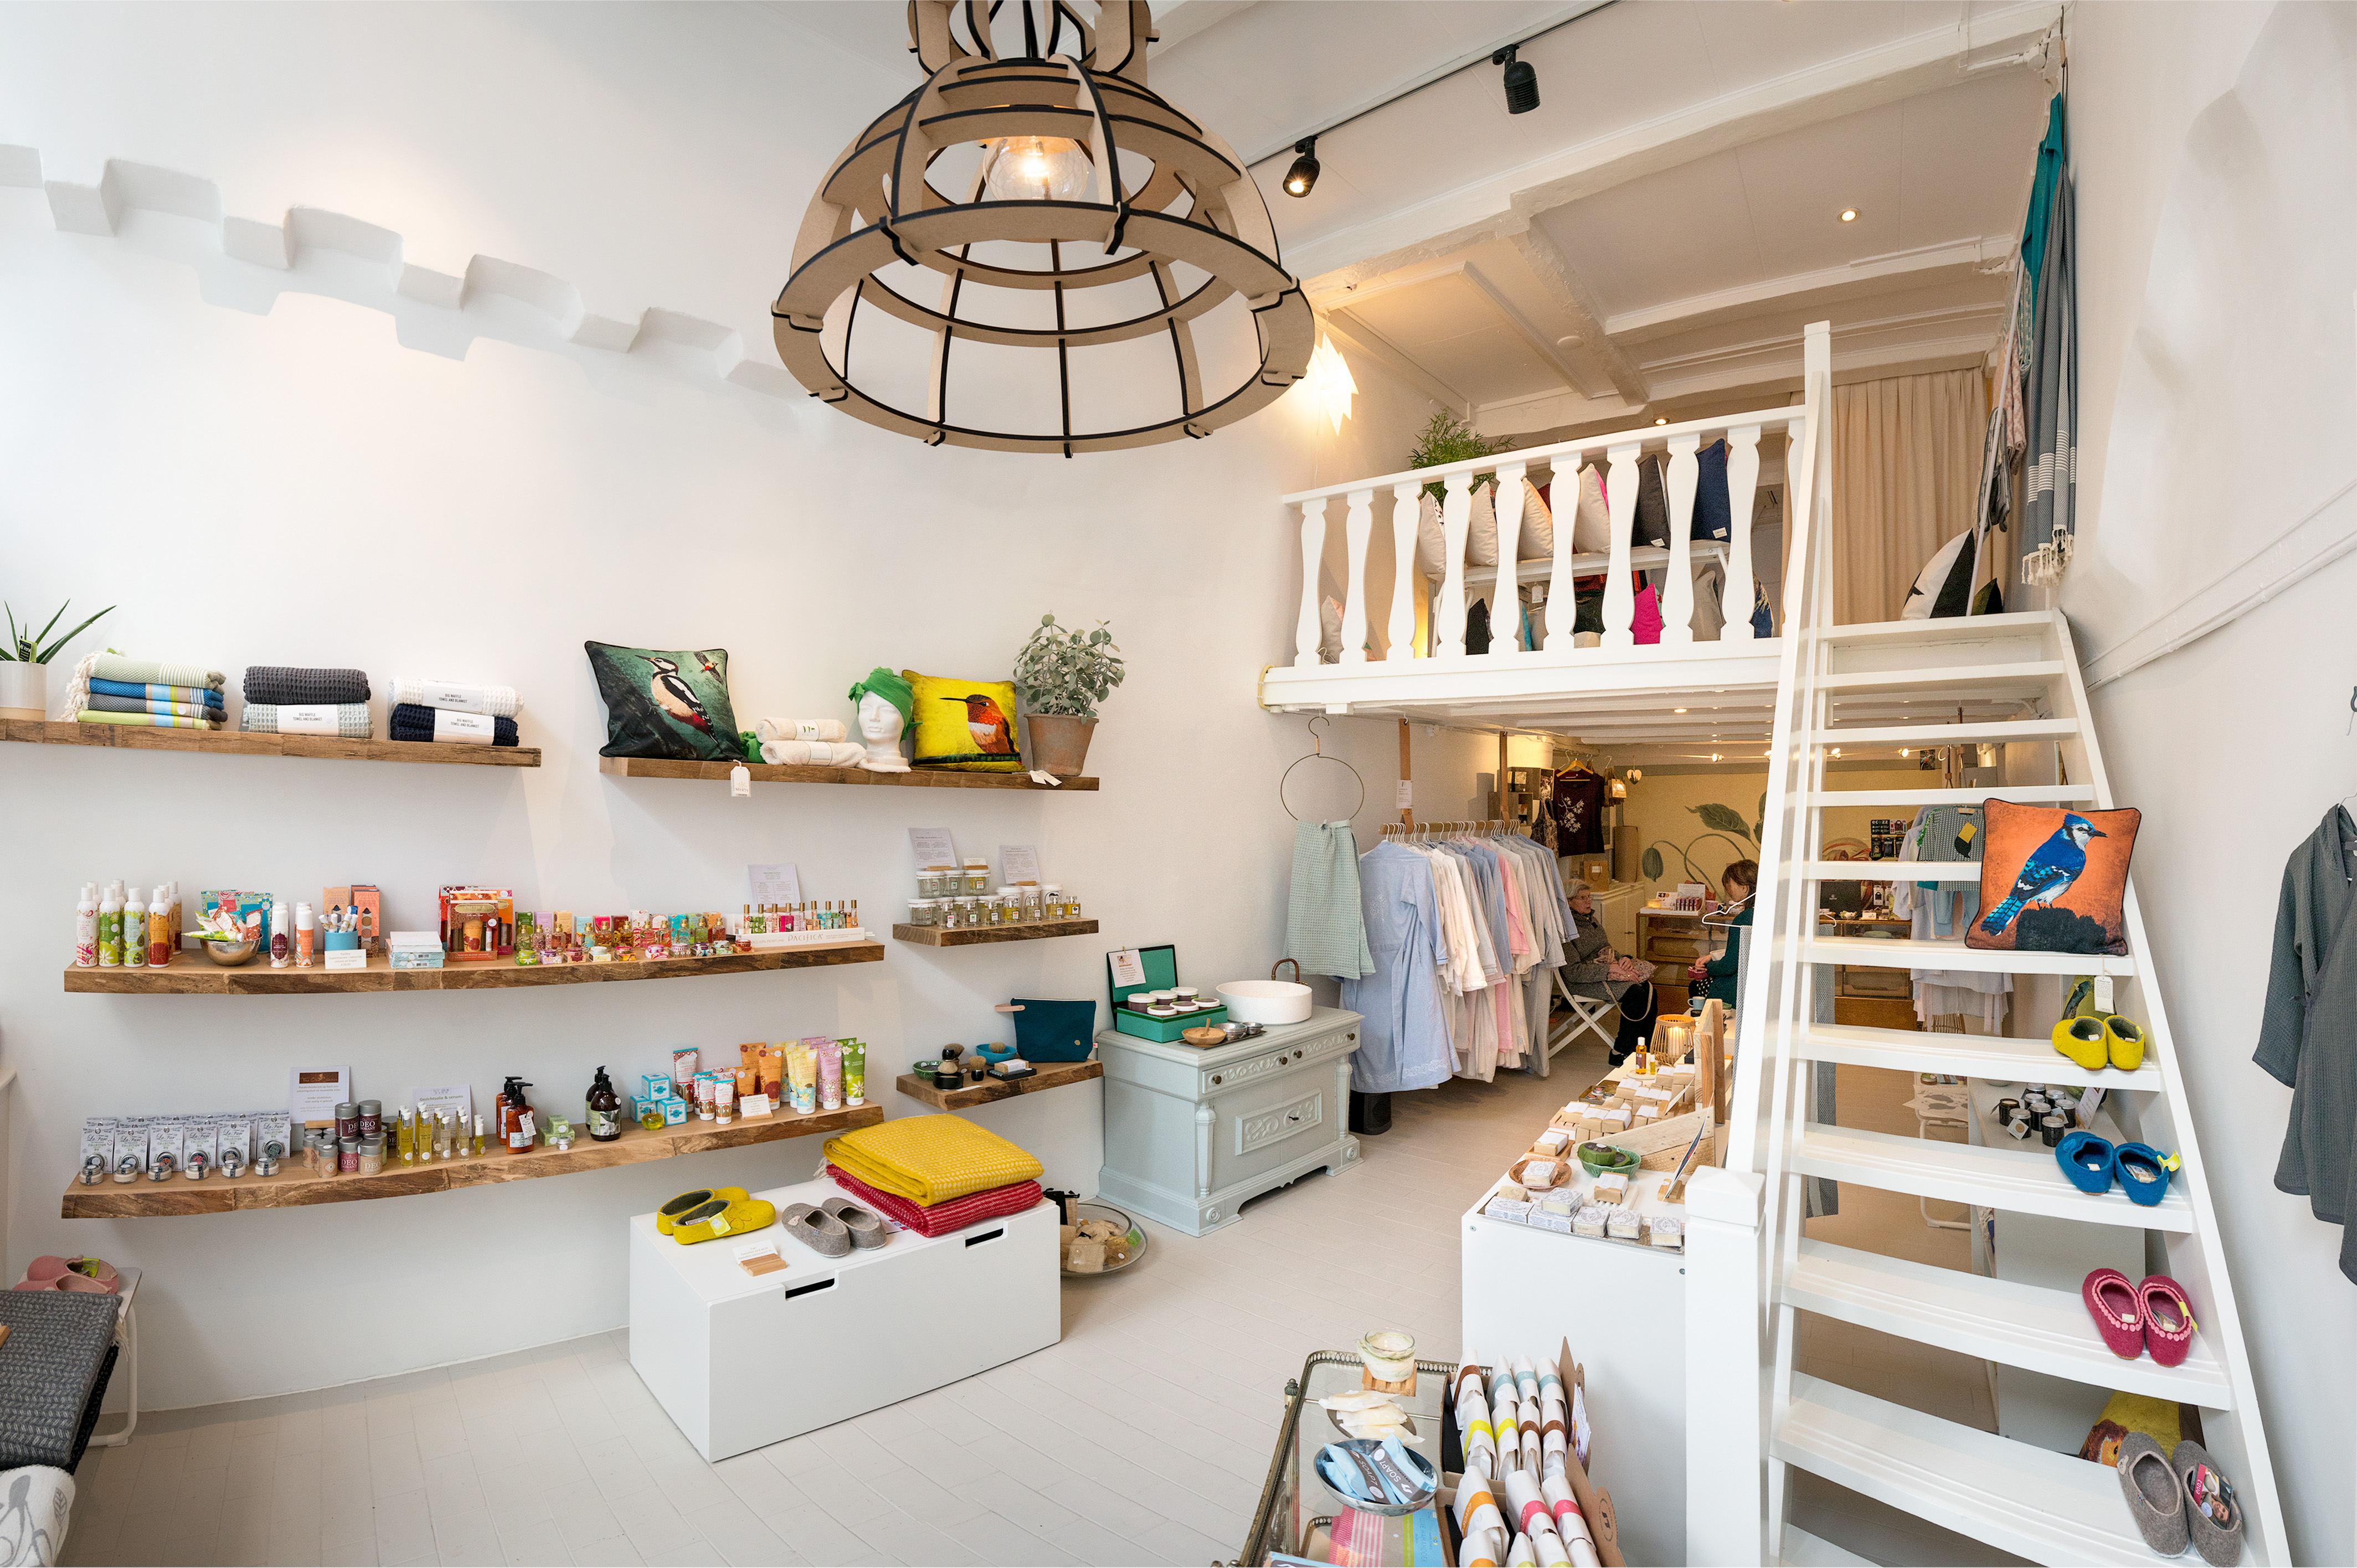 Winkel-FeelingGoods-Sprongstraat-5